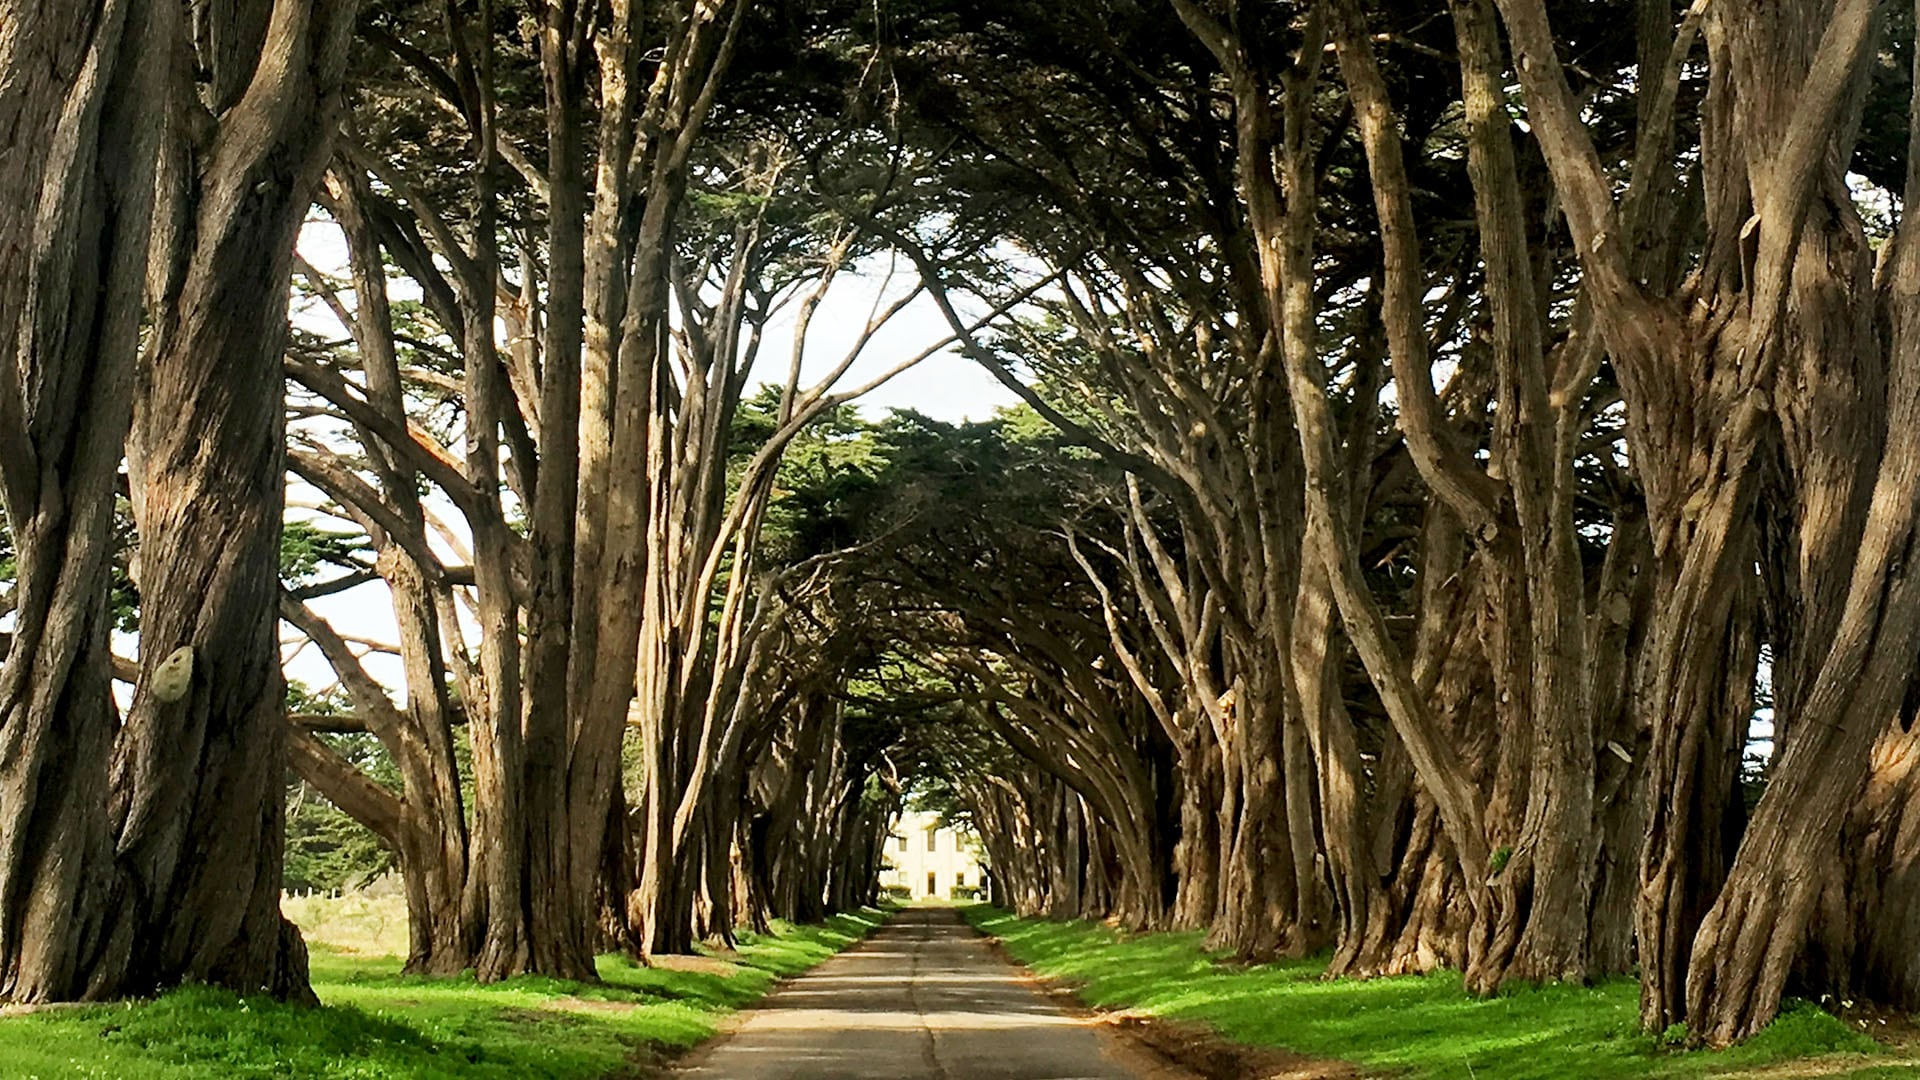 he Cypress Tree Tunnel at Point Reyes, California, is worth a stop, especially for photographers.